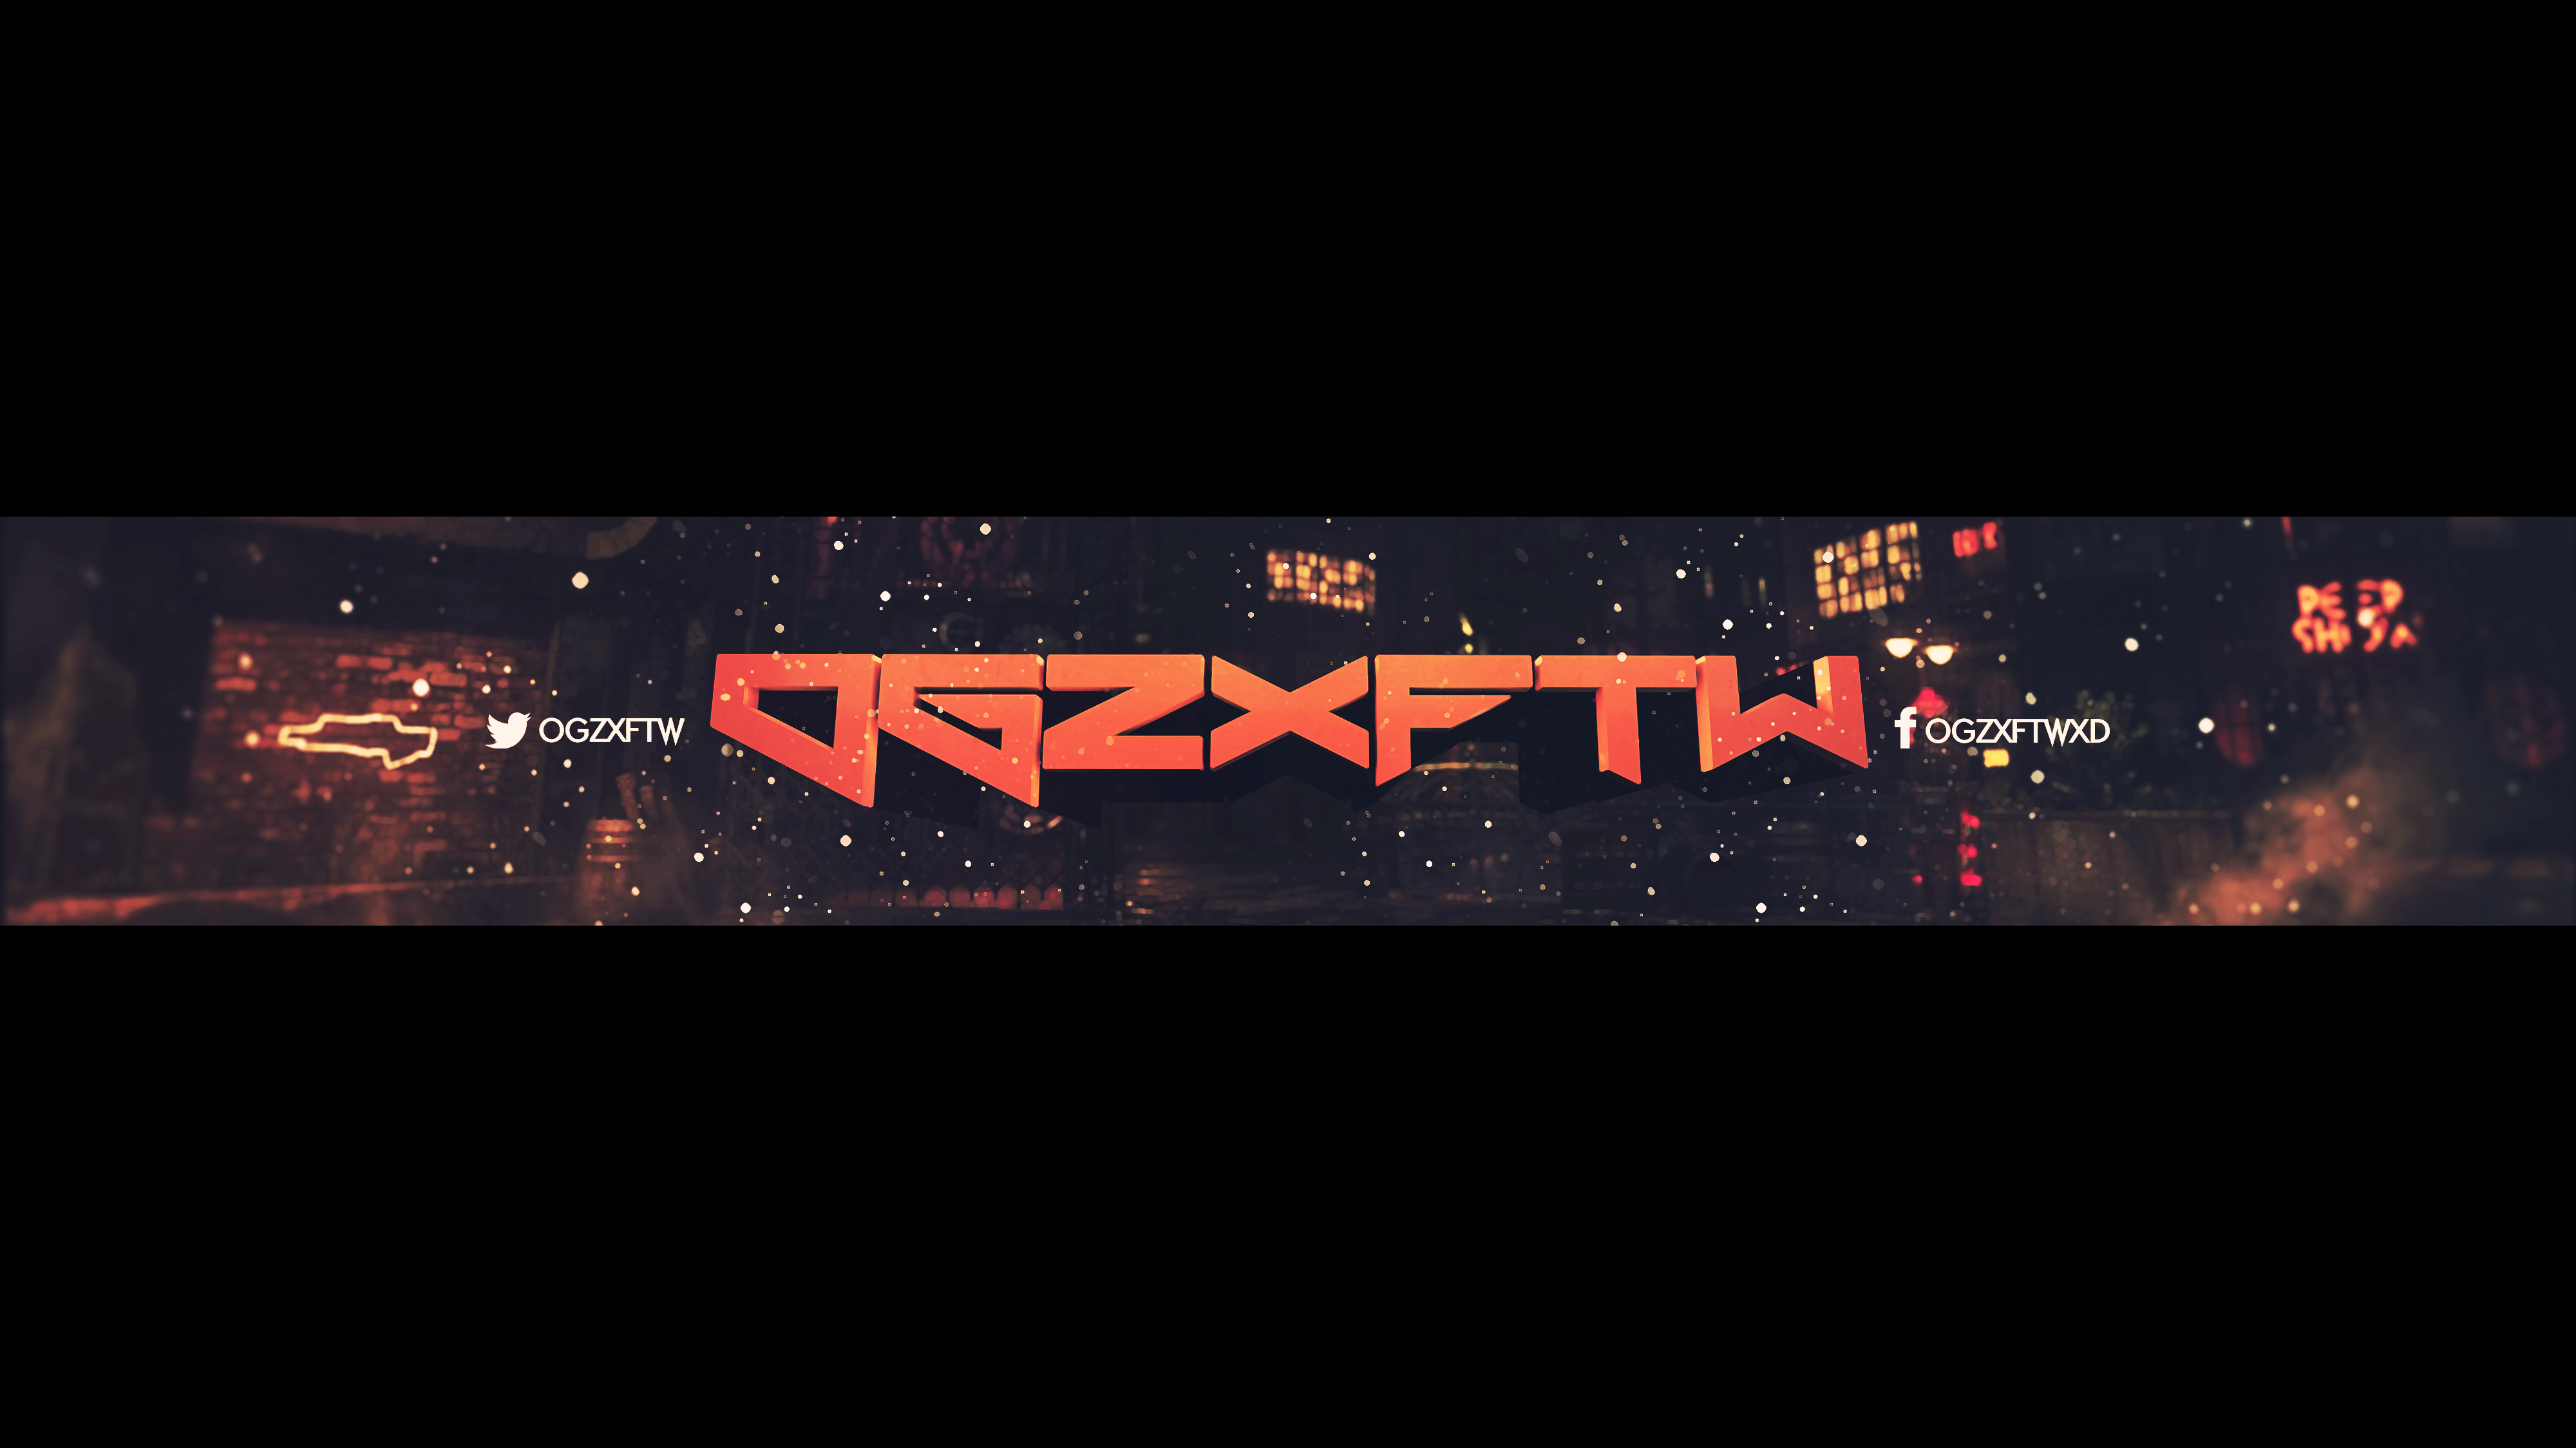 OGZxFTW Youtube Banner By GraphicalMinion On DeviantArt